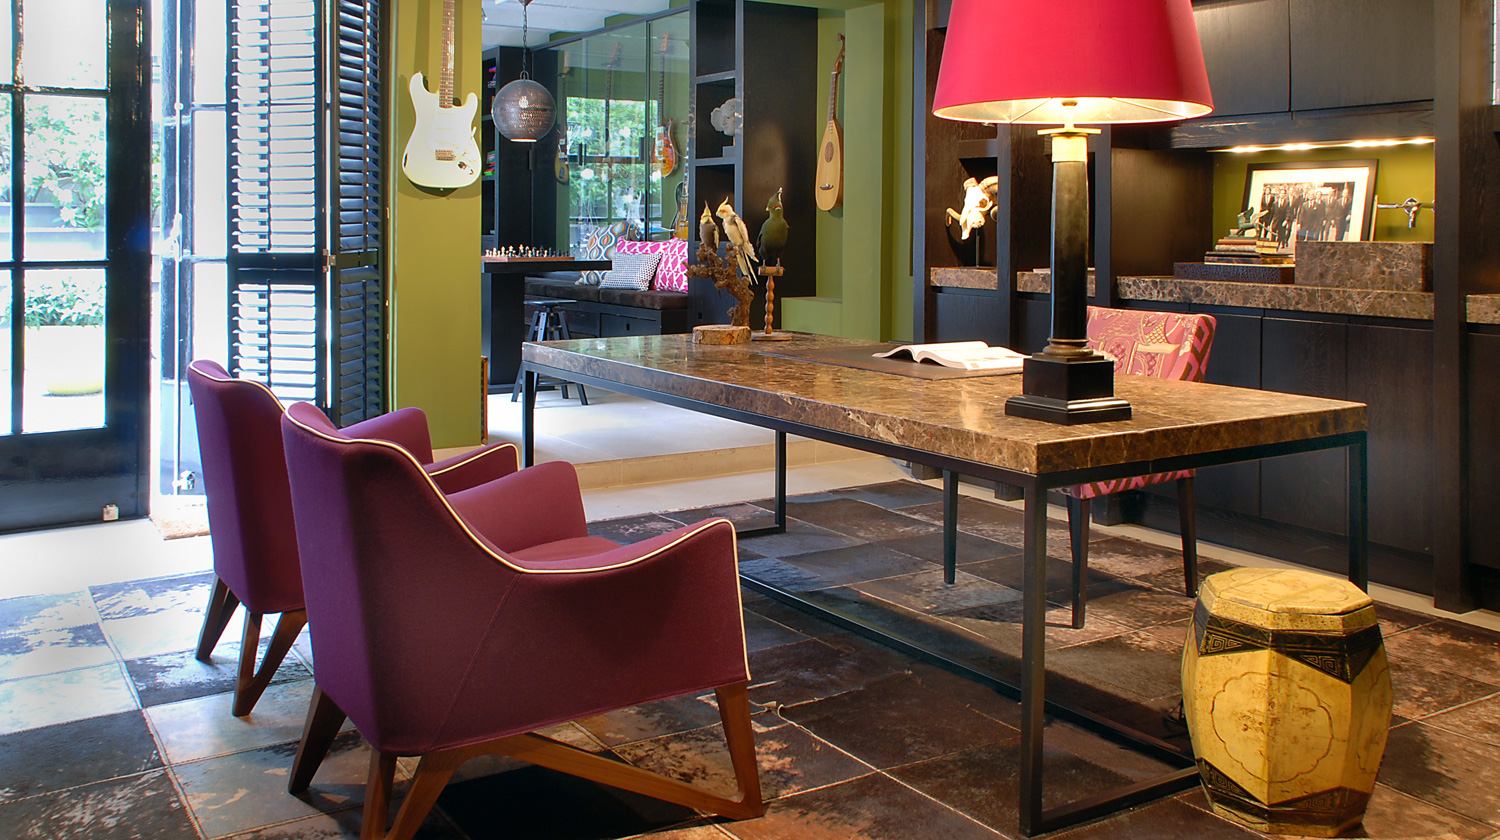 Prinsengracht eveline for Eveline interieur